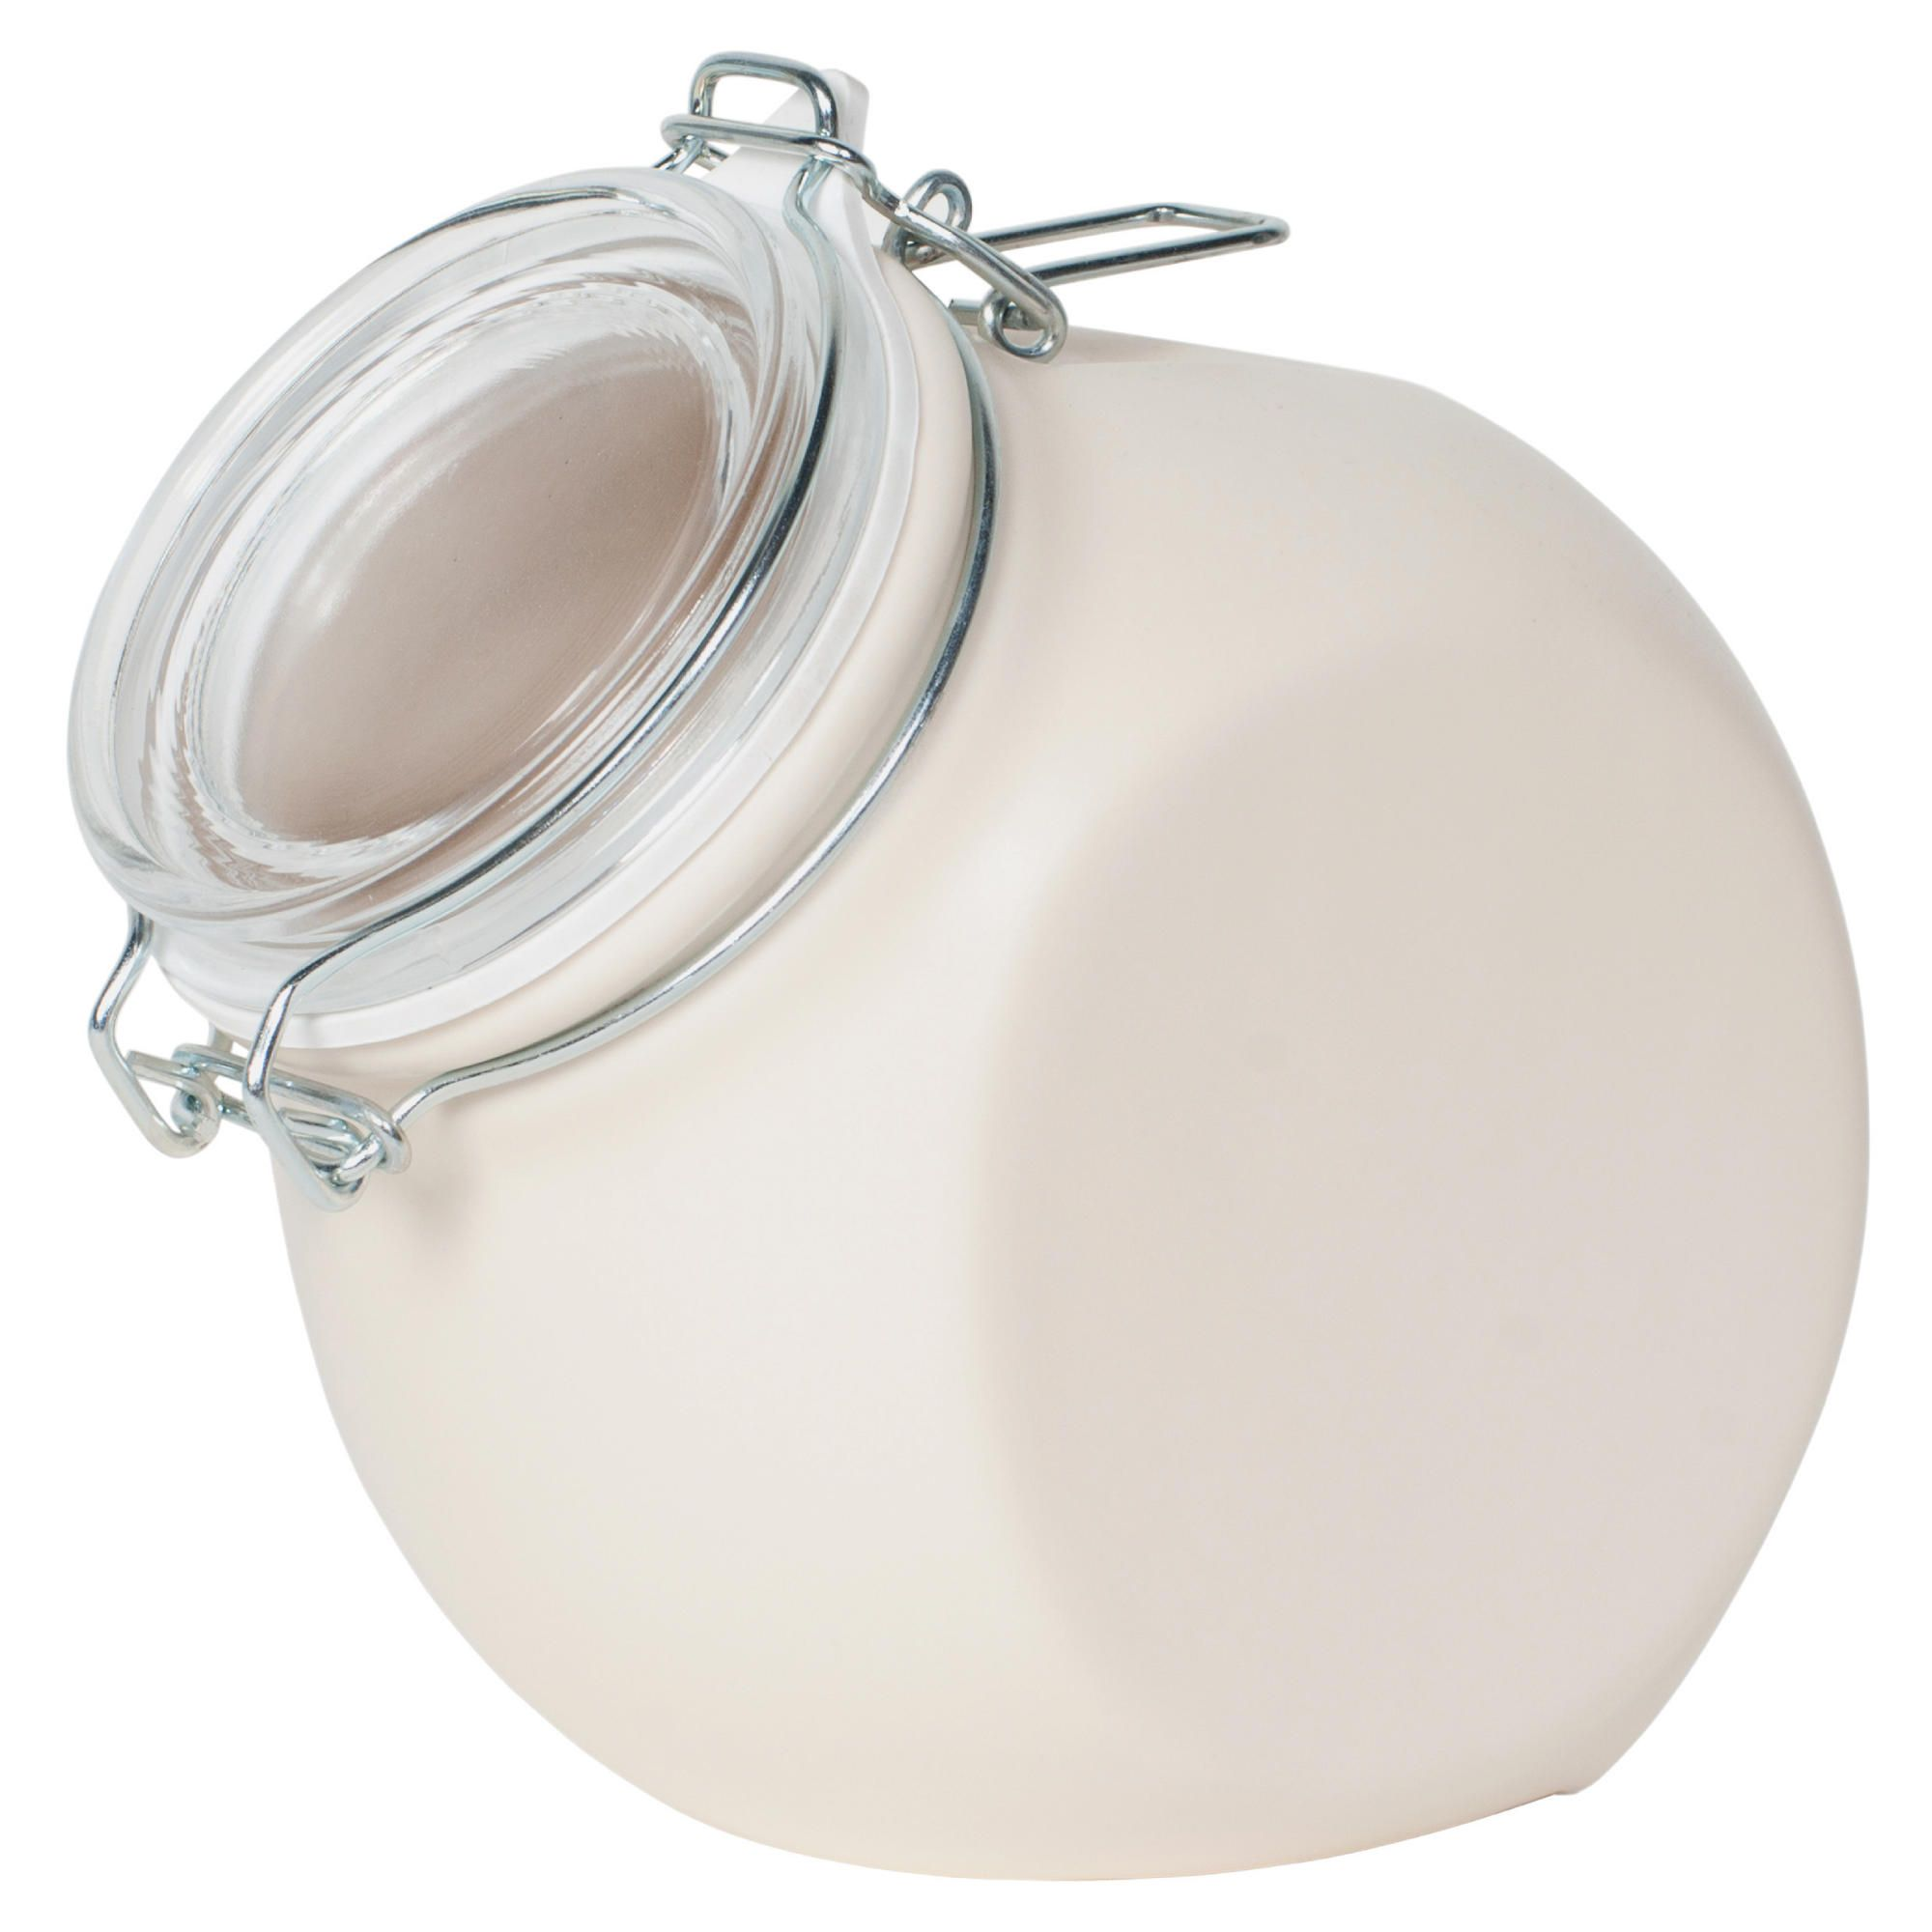 Nigella Lawson Living Kitchen 1.5L Storage Jar, Cream